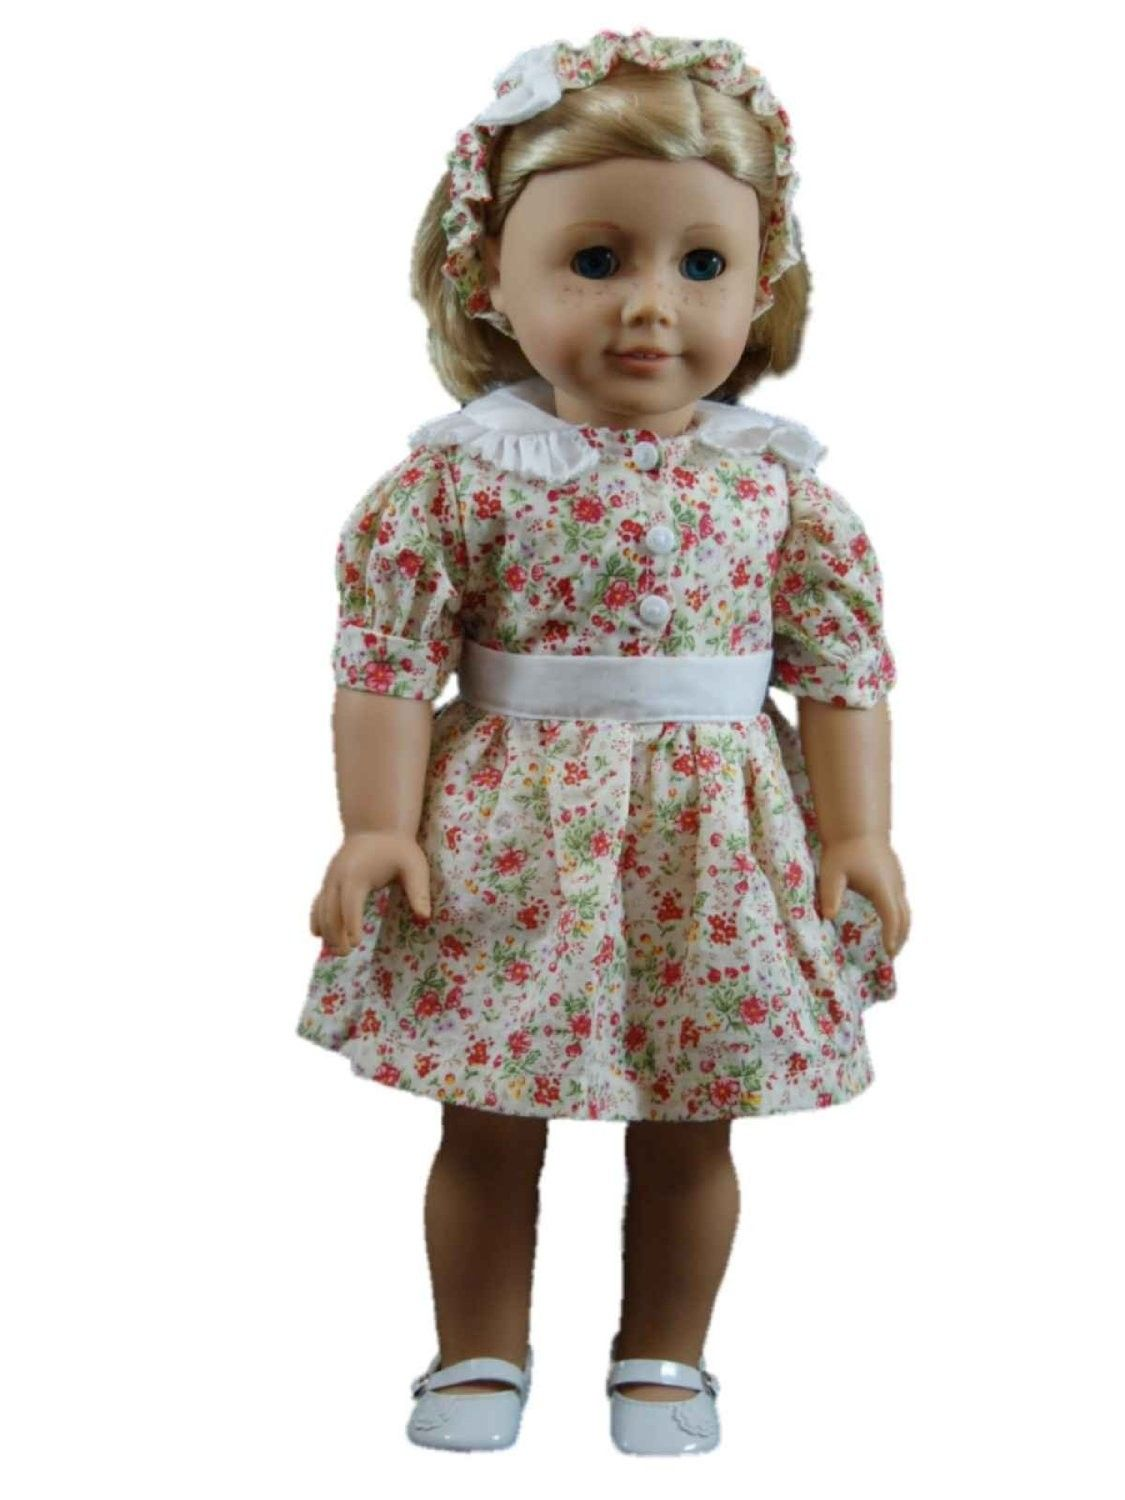 Doll Clothing! Sized perfectly for 18 inch dolls, such as, American Girl Dolls. Nostalgic vintage floral cotton print creates the most adorable 1930's inspired dress. Matching headband included. (Shoes sold separately). Designed and Manufactured by us, The Queen's Treasures.